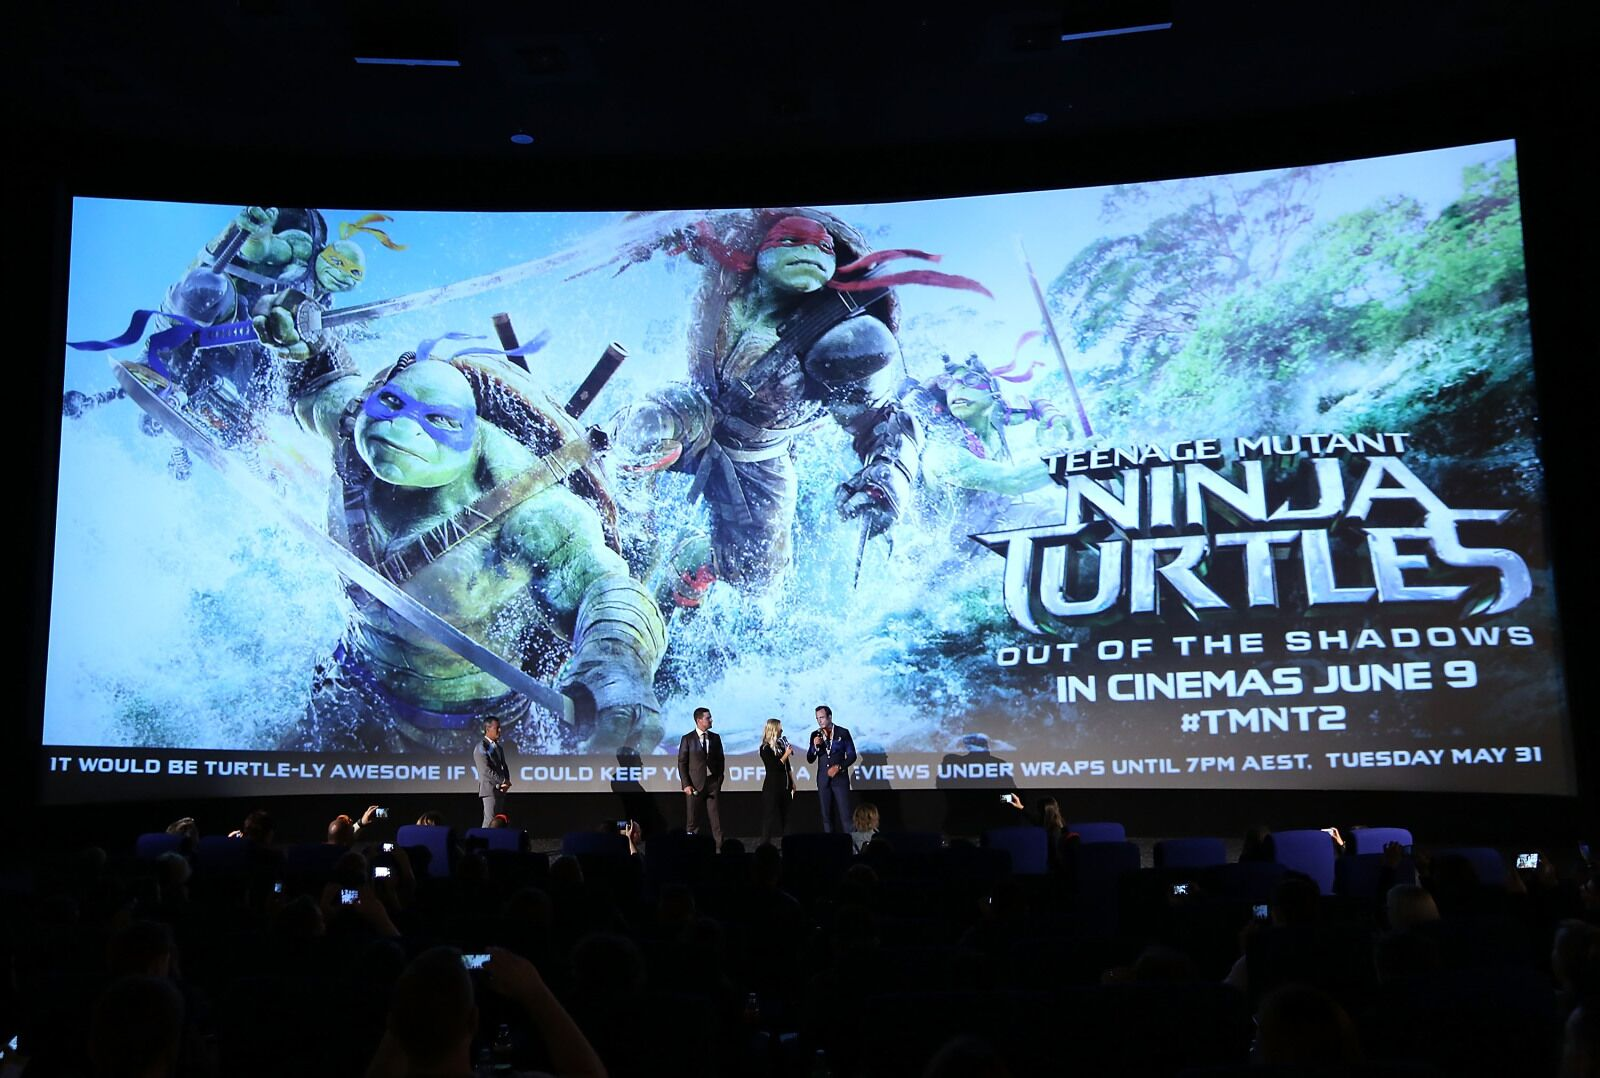 What we know about the Ninja Turtles movie reboot